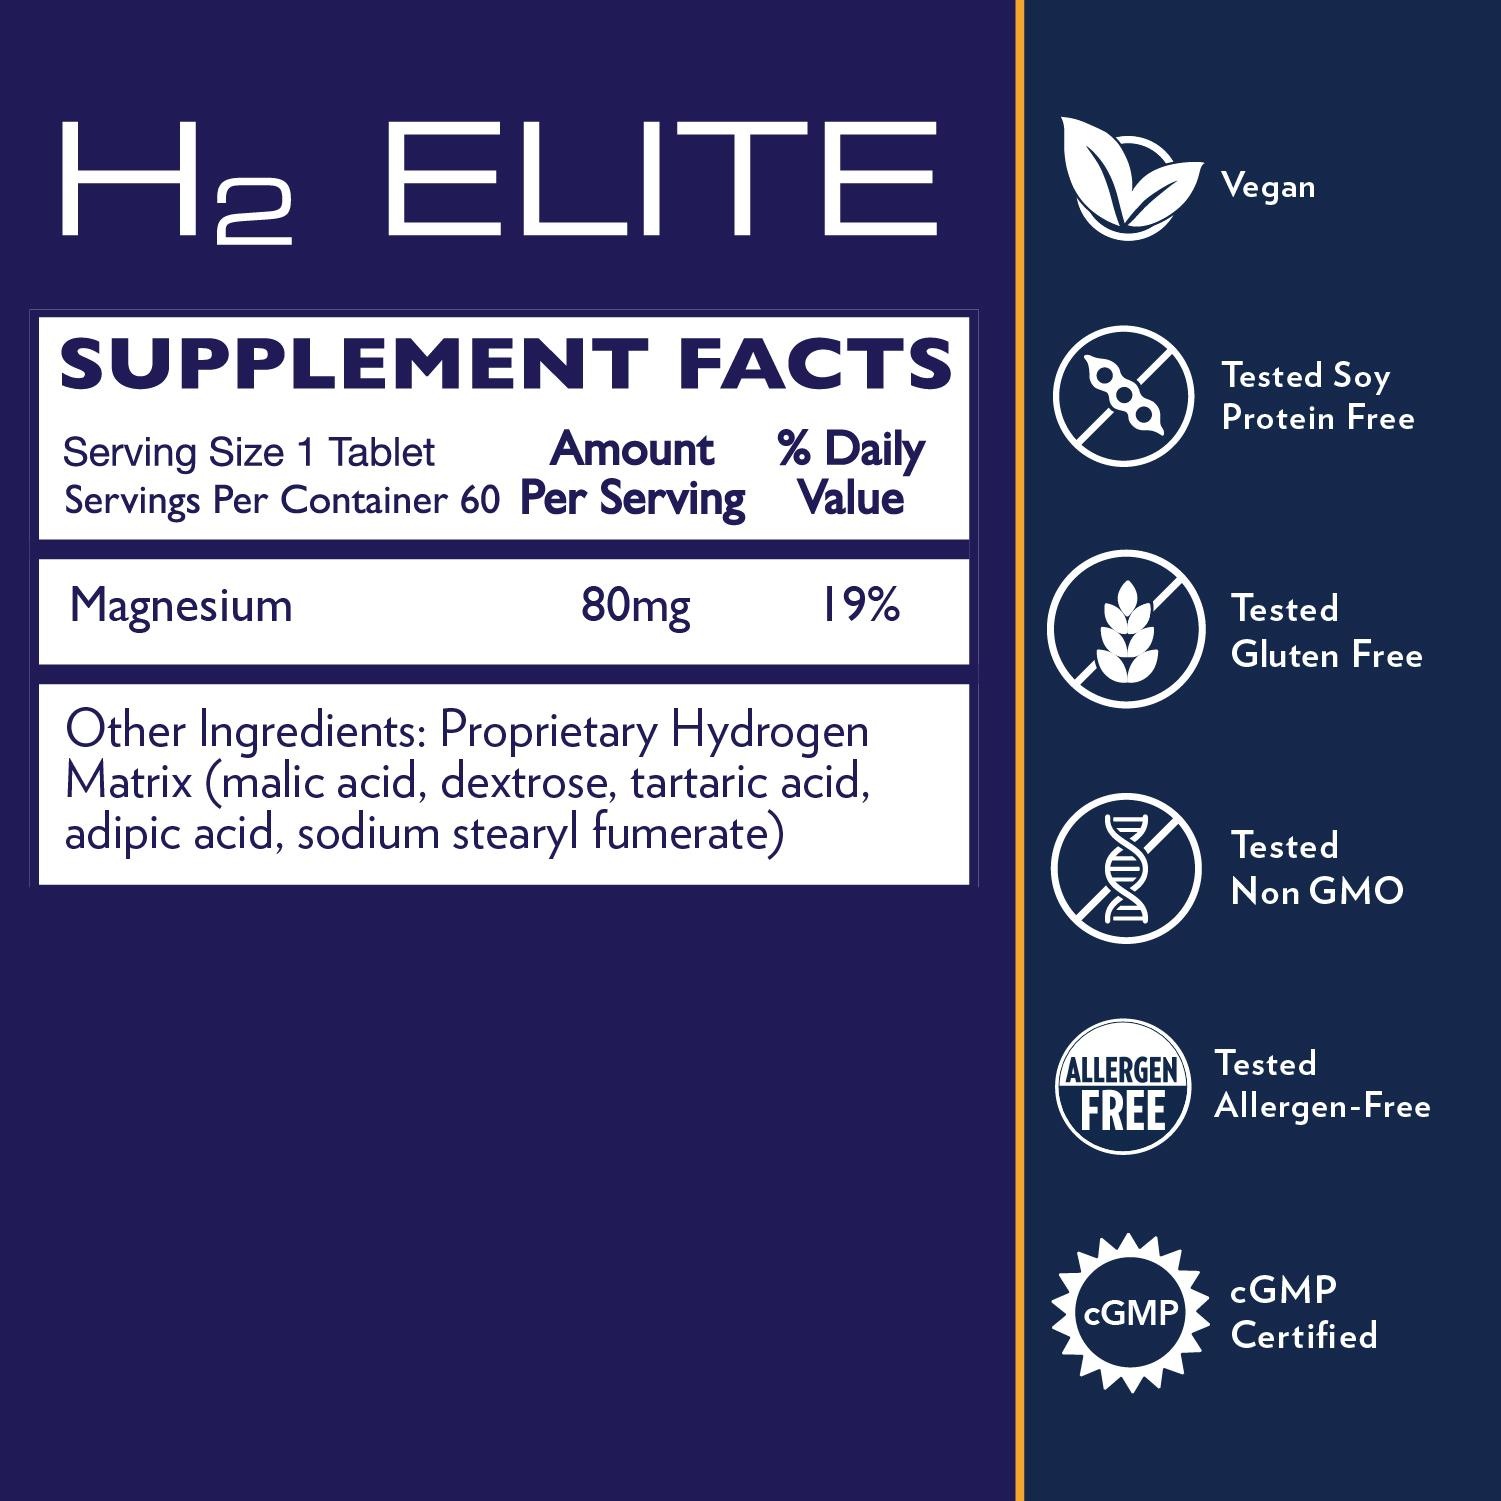 h2-elite-supp-facts.jpg